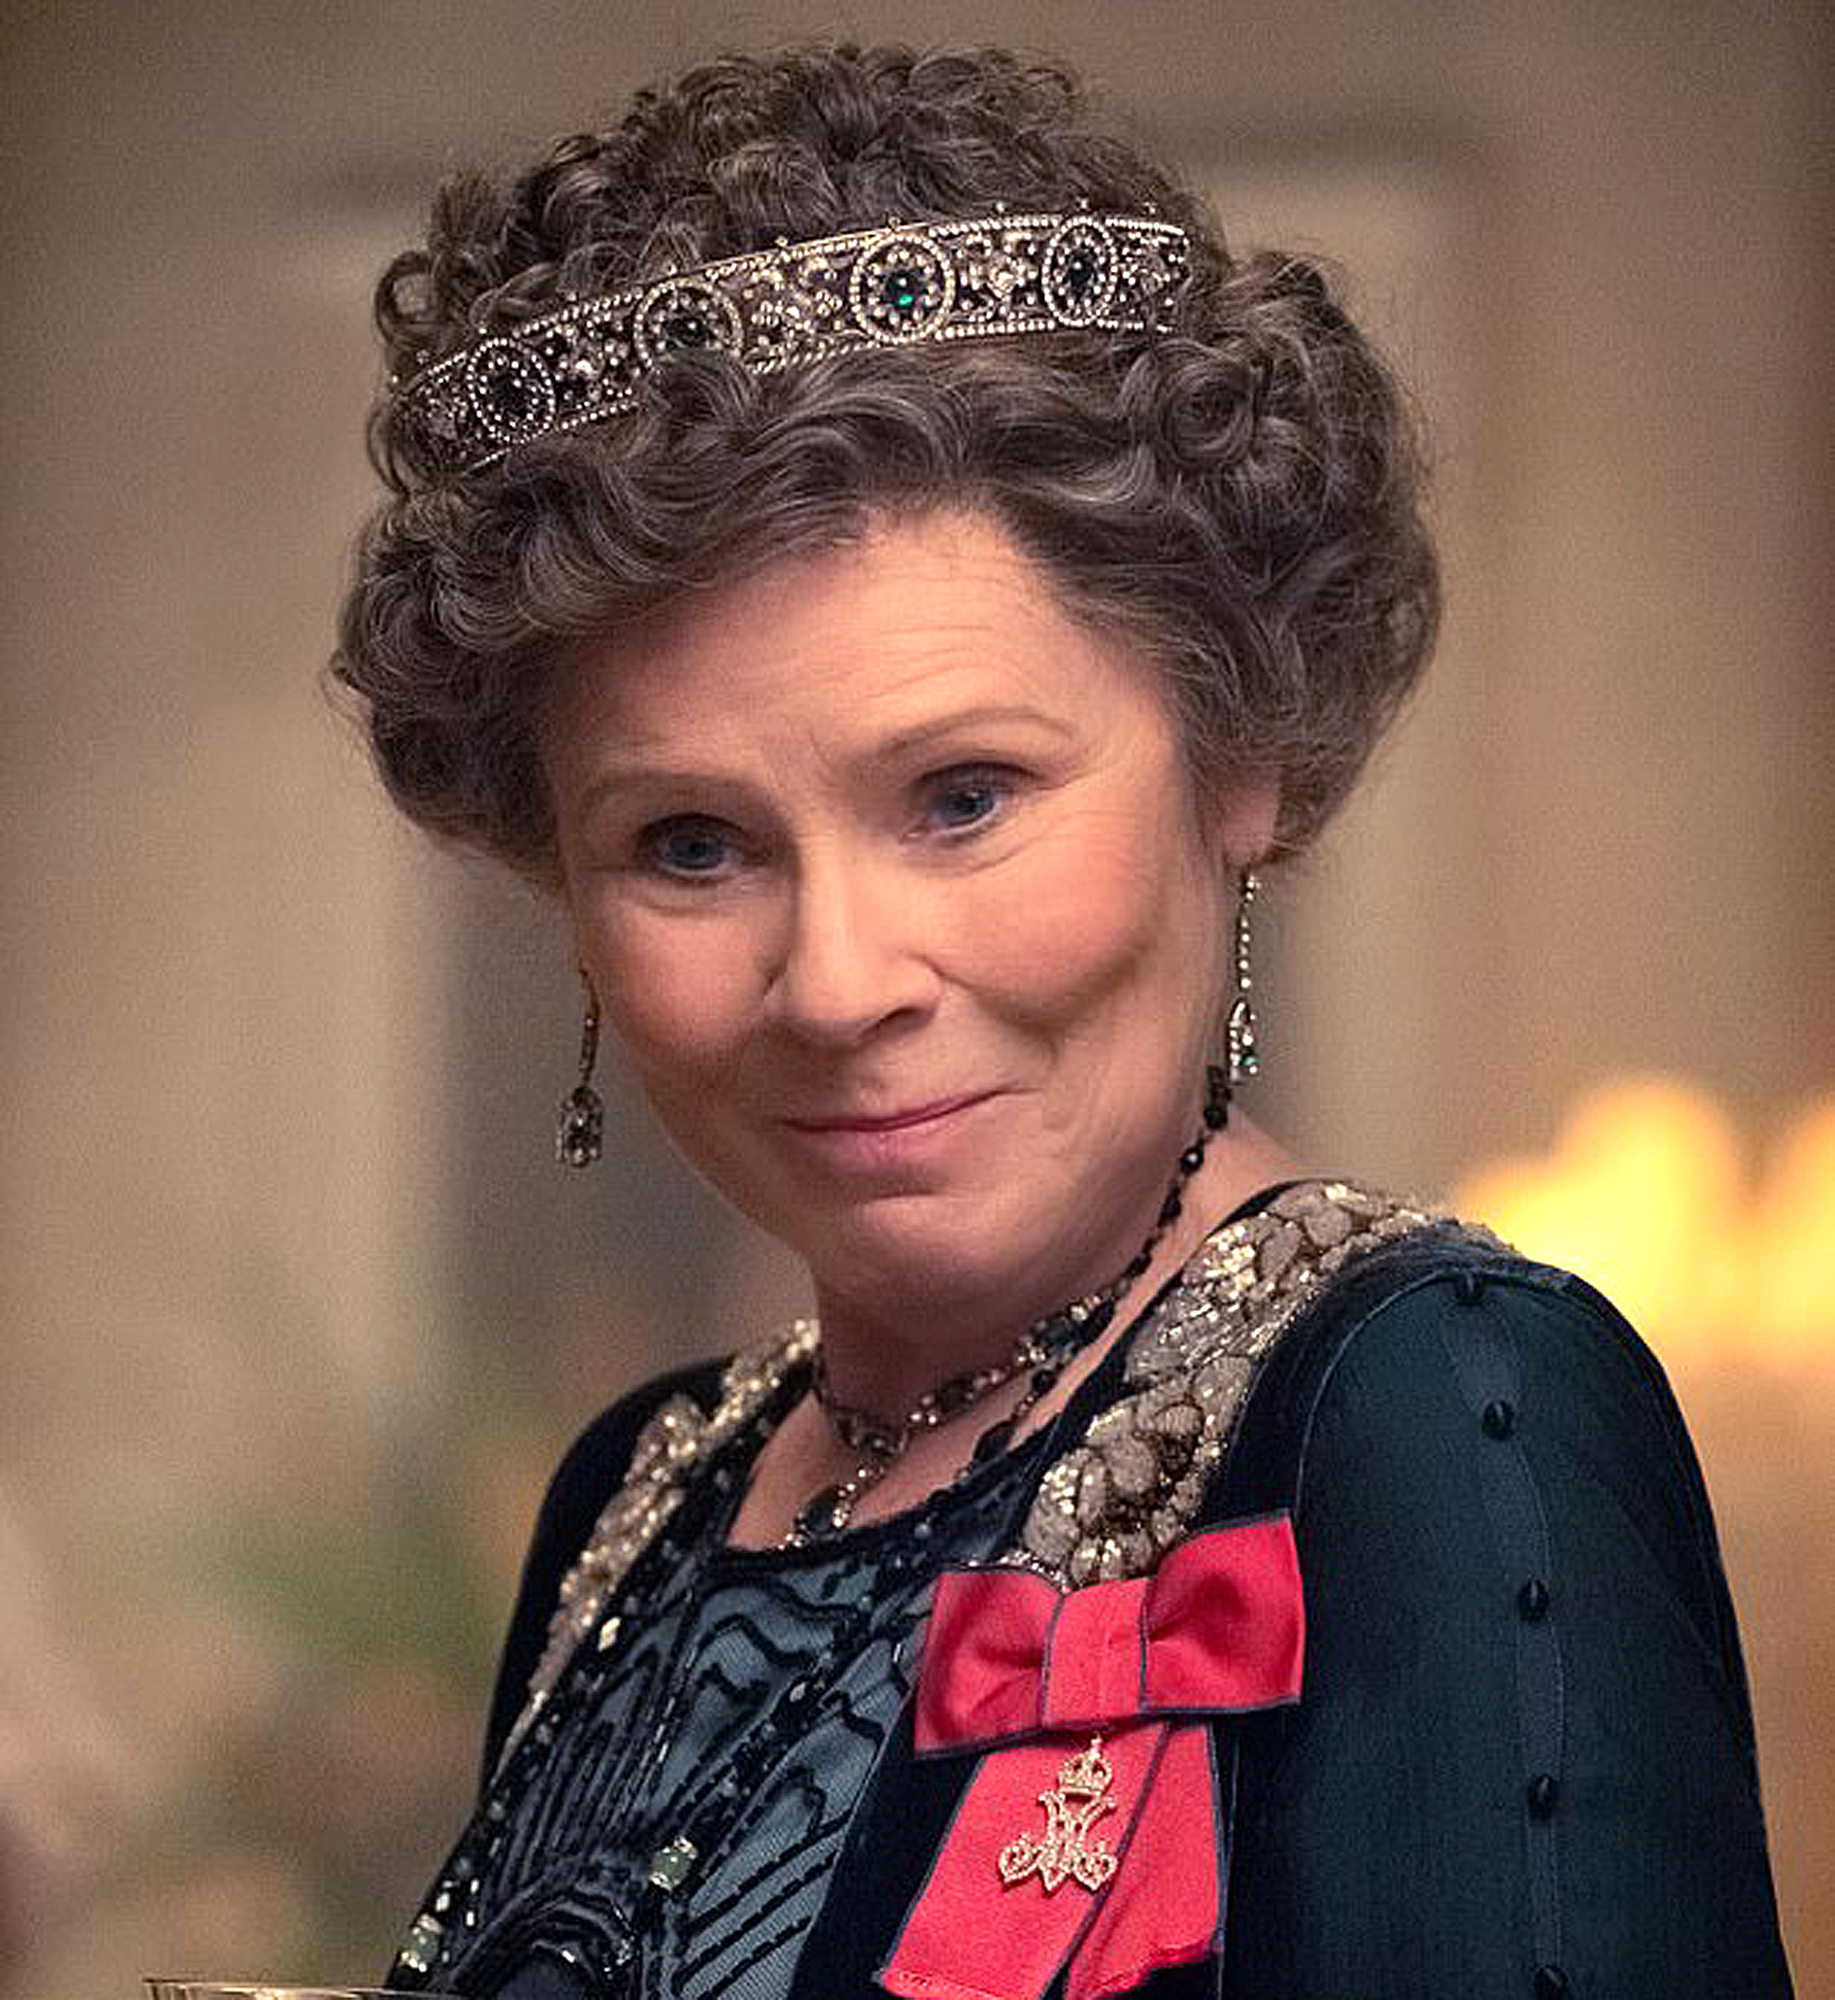 Imelda Staunton in Downton Abbey